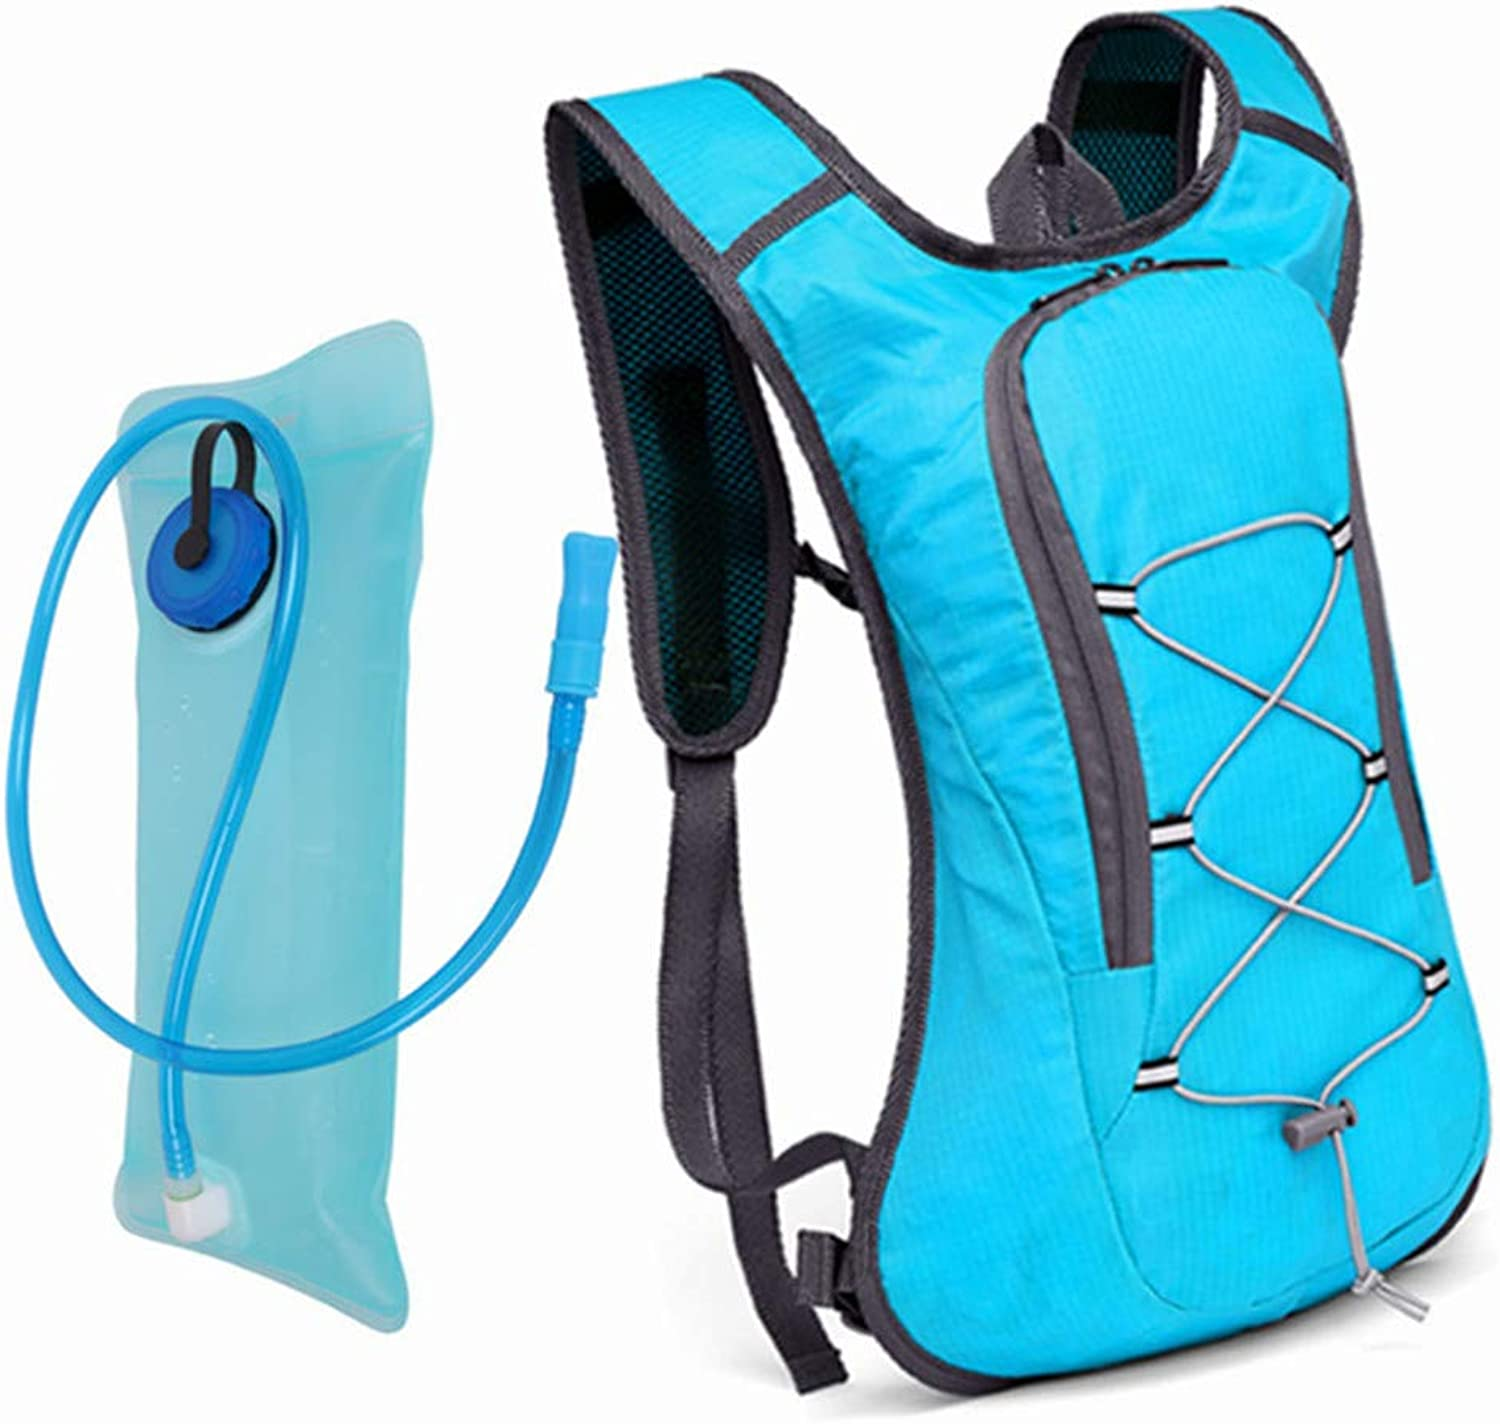 Water Bladder Hydration Shoulder Backpack Lightweight Daypack 2L for Outdoor Gear Skiing Running Hiking Cycling (color   bluee+bluee 2L Water Bladder)